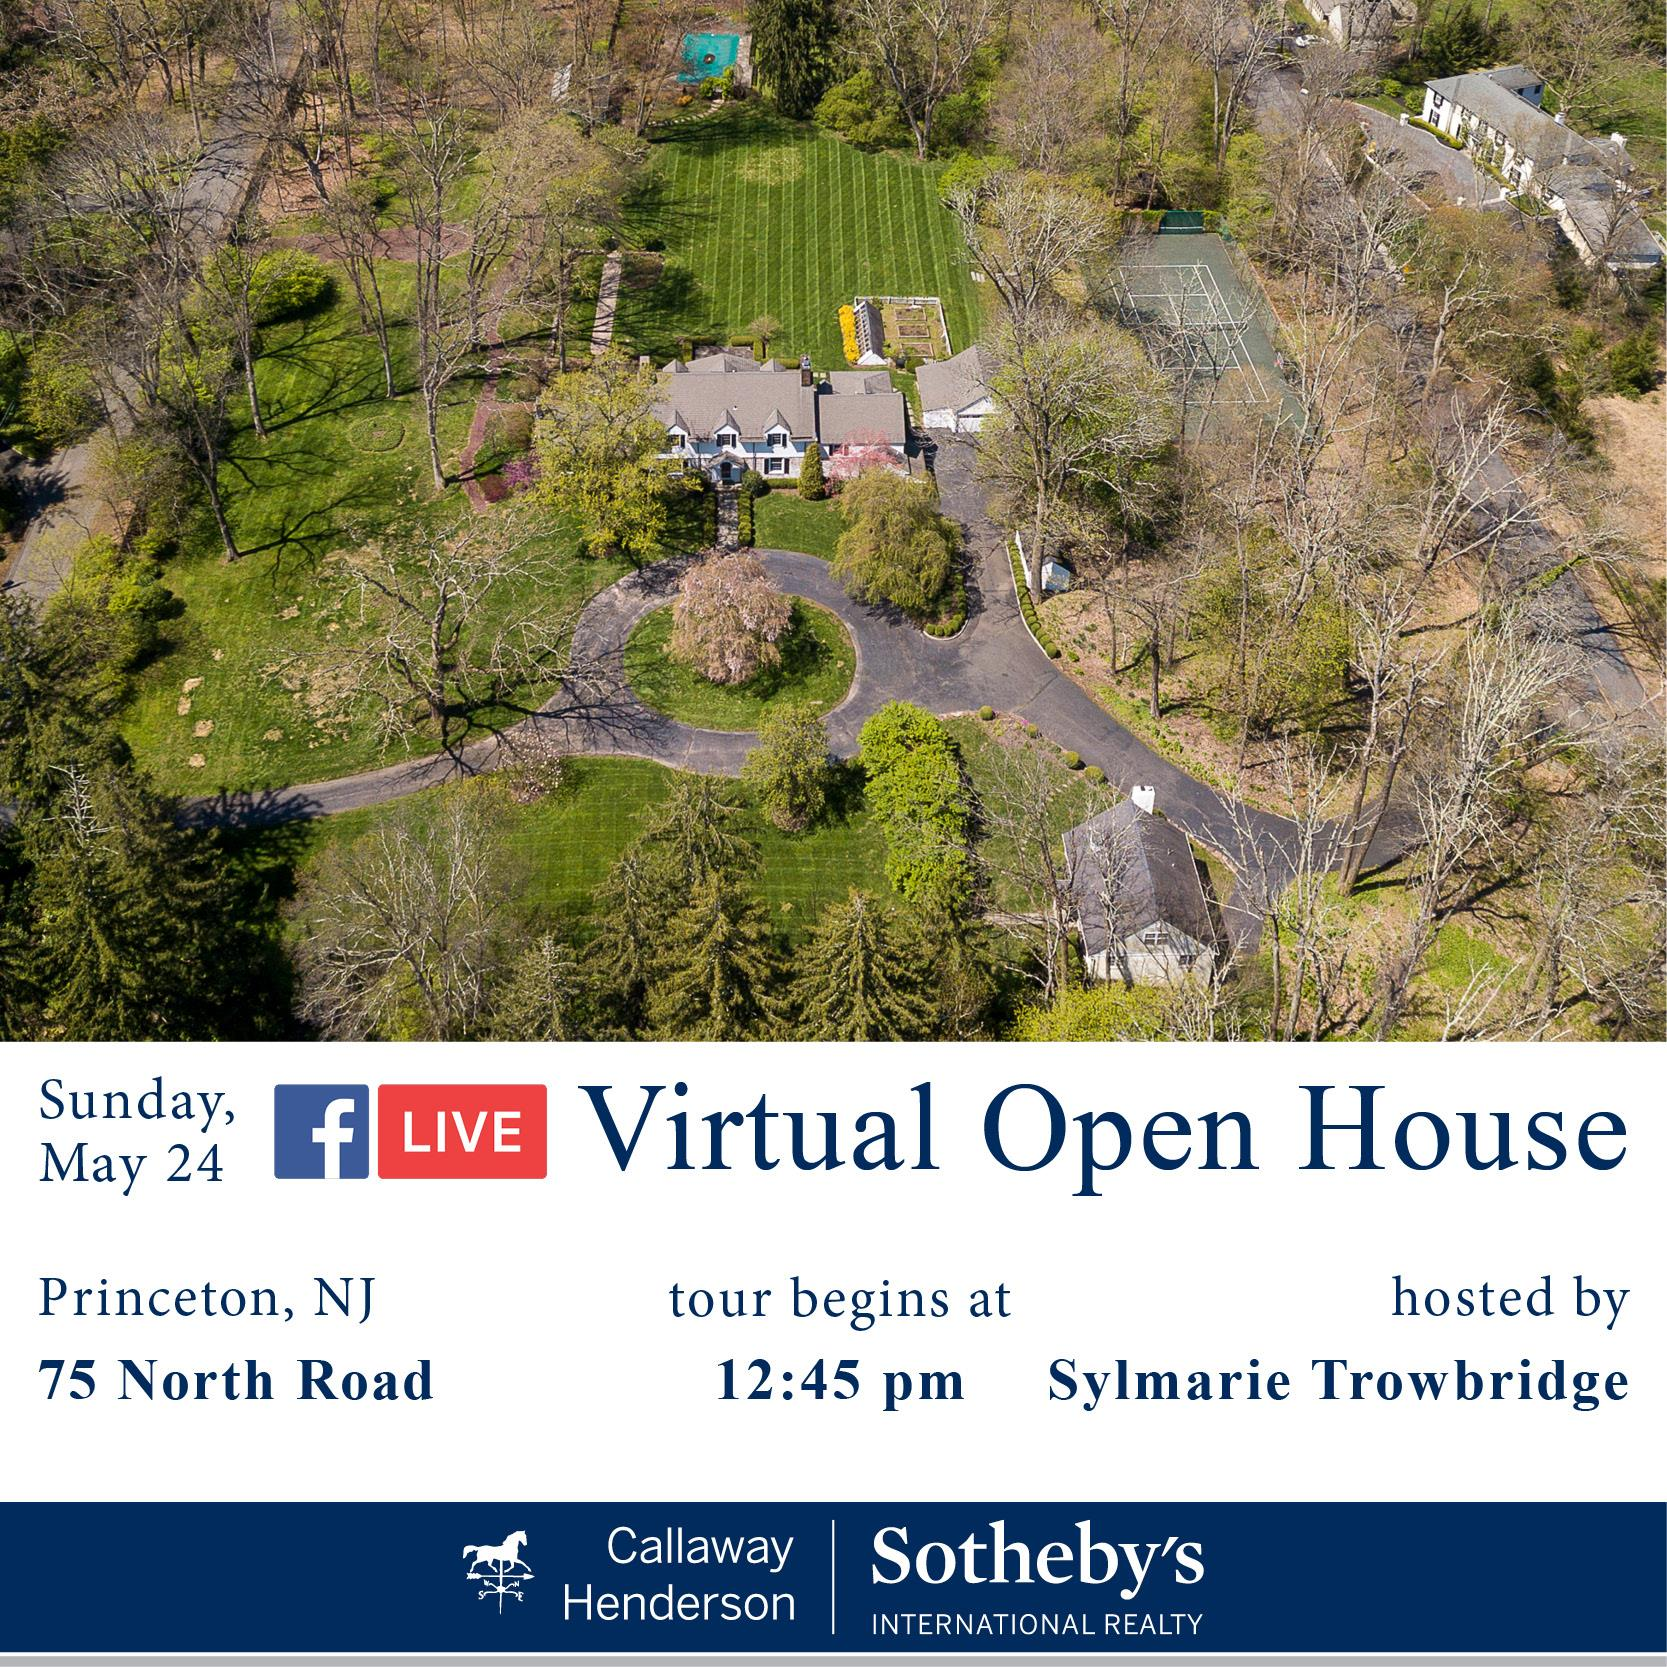 Live Virtual Open House Template-North Road 75